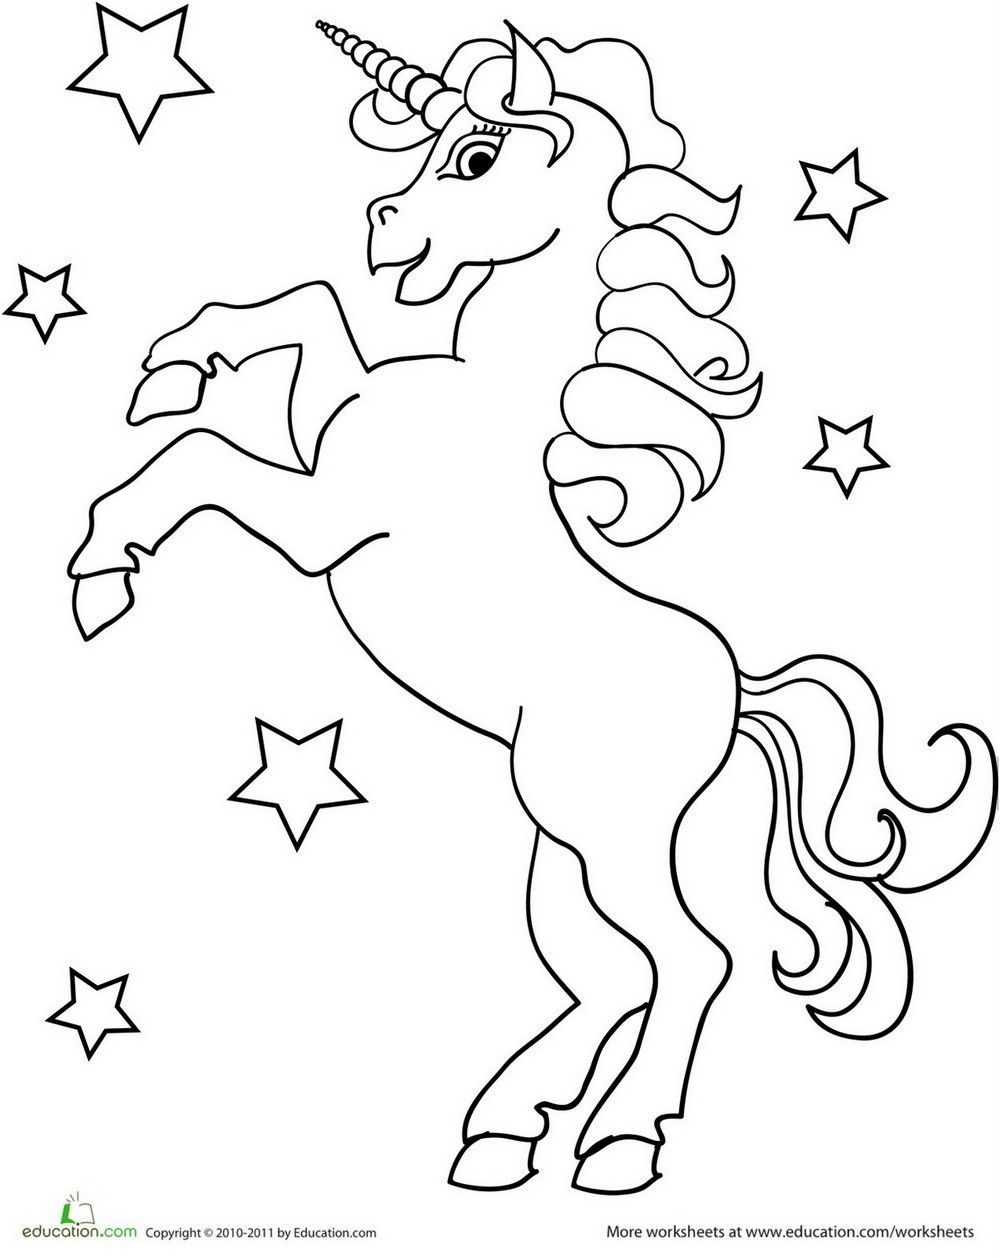 Coloring Page Of A Unicorn Free Unicorn Coloring Pages Rainbow Unicorn Party Unicorn Crafts